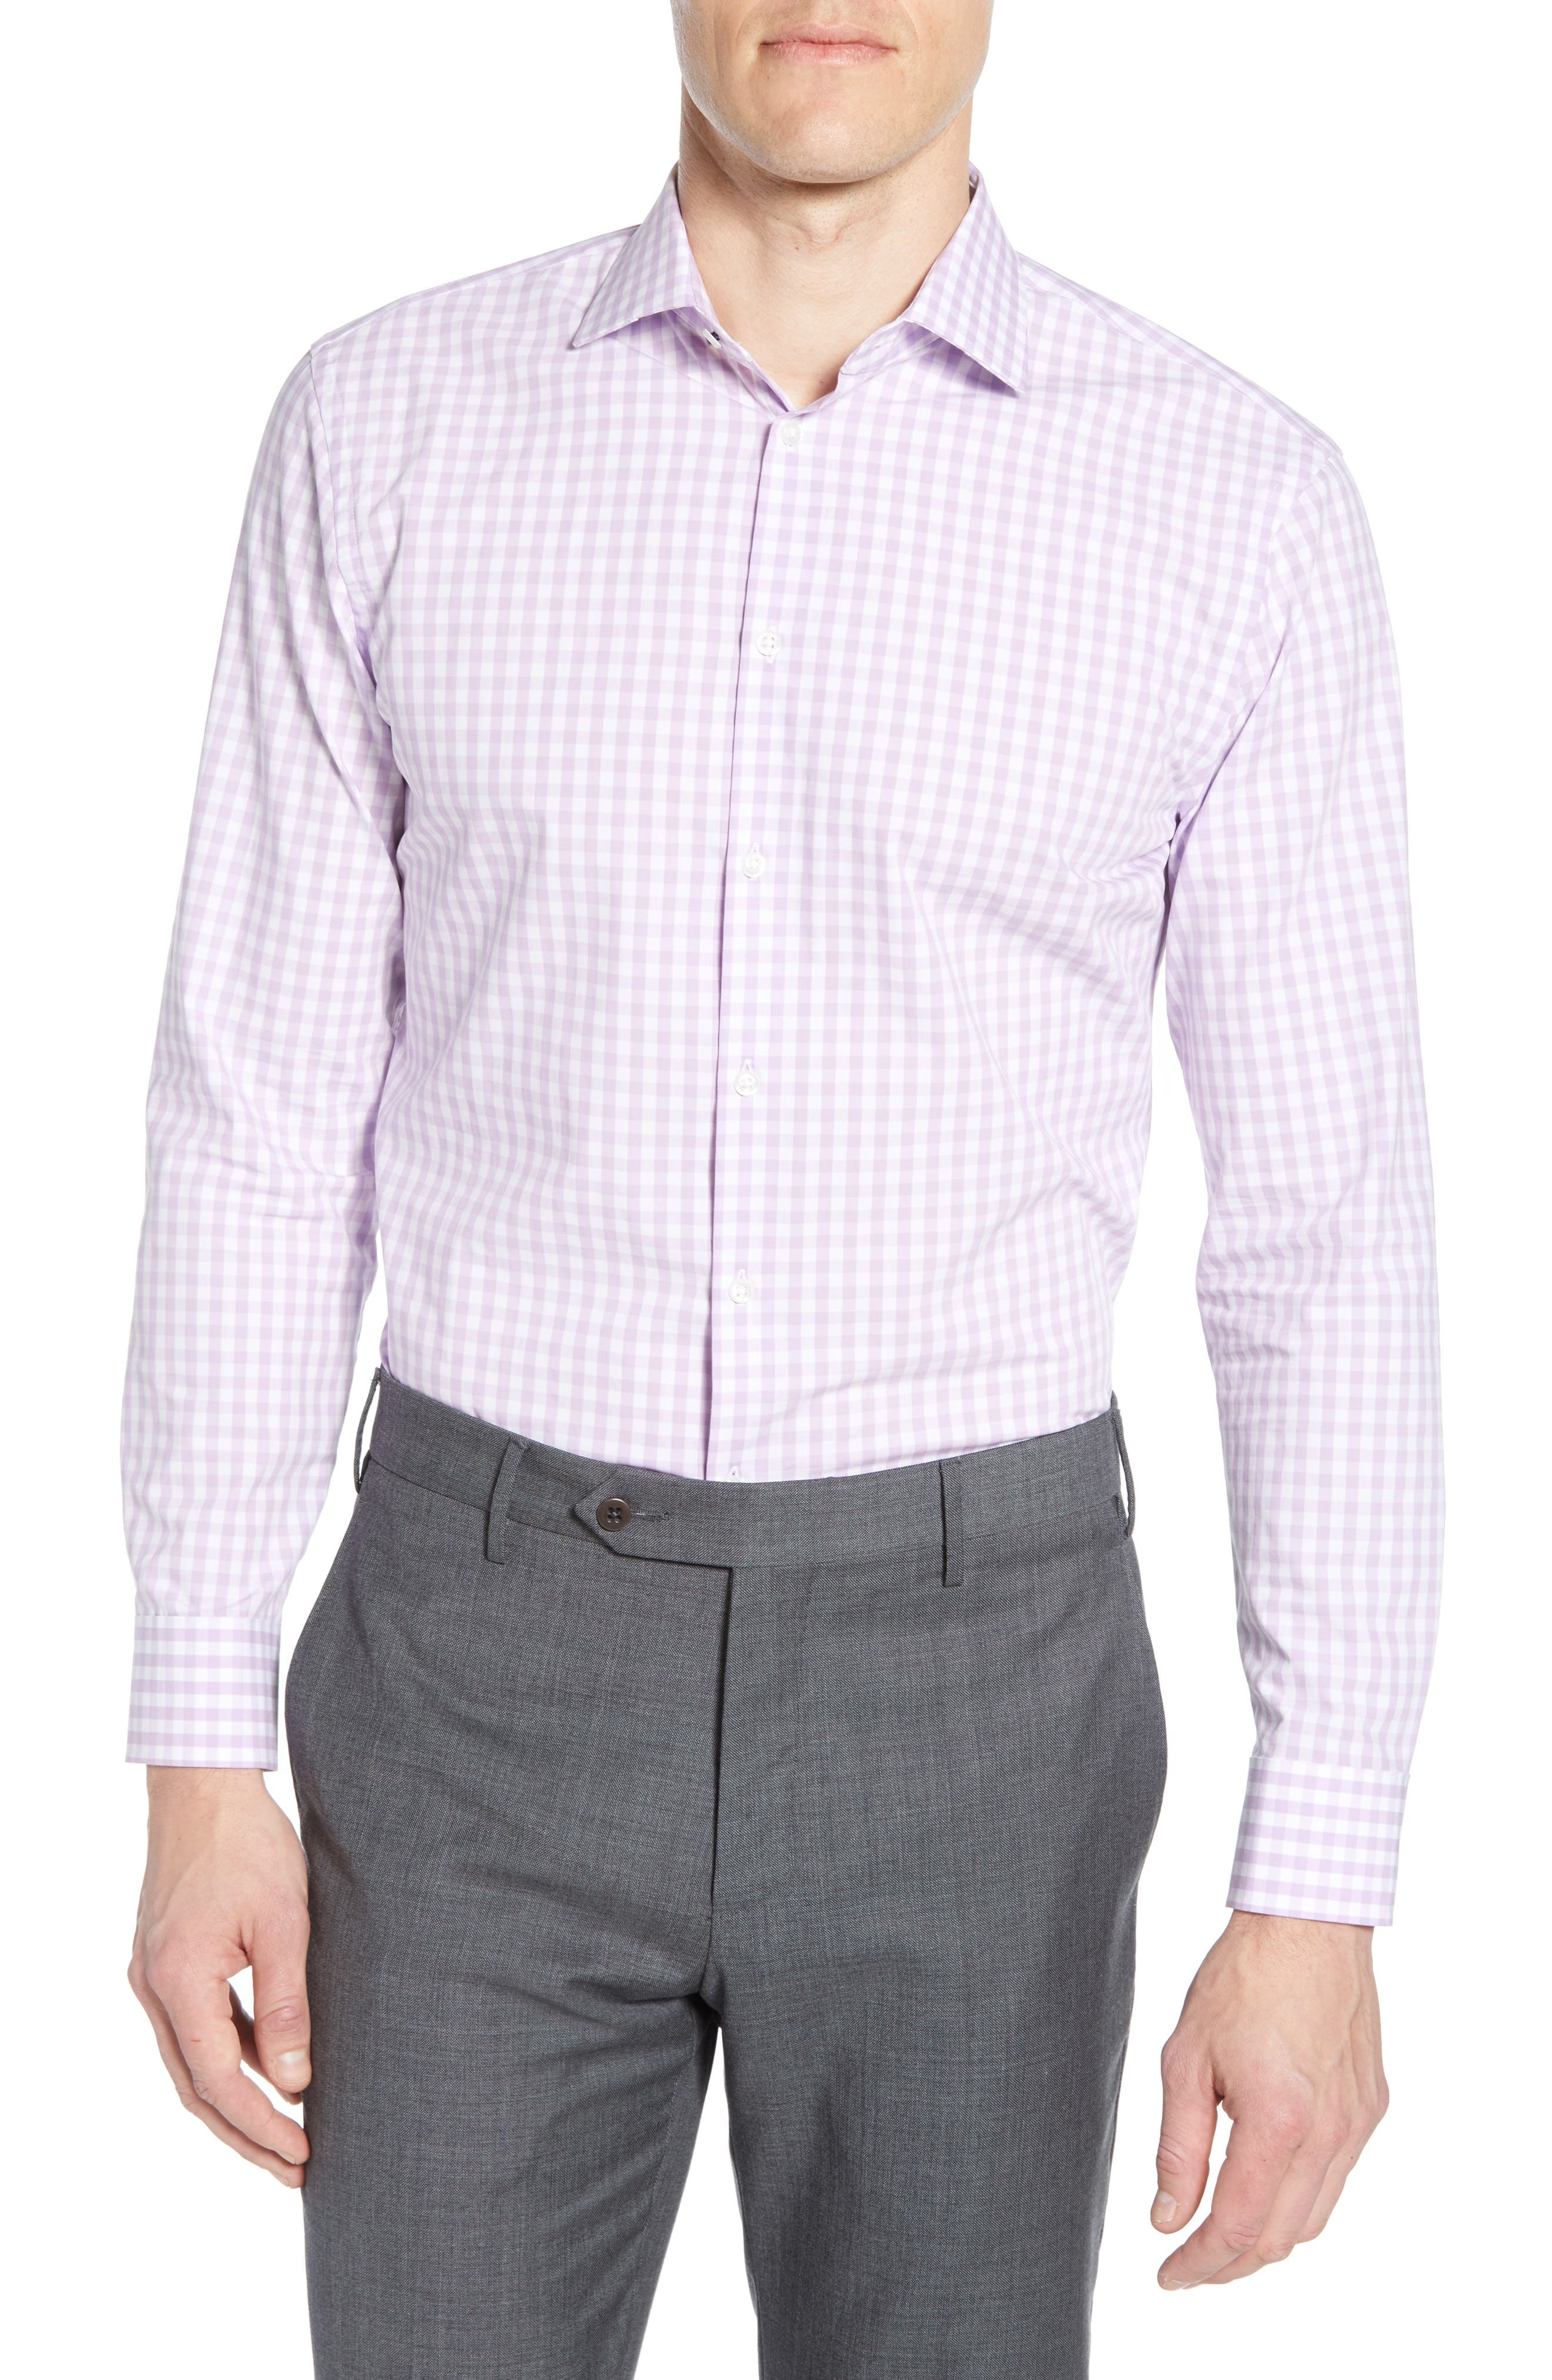 Cheap Price Mizzen Main Men's Dress Shirt Large Slim Trim Fit Light Blue White Checker And To Have A Long Life. Men's Clothing Clothing, Shoes & Accessories